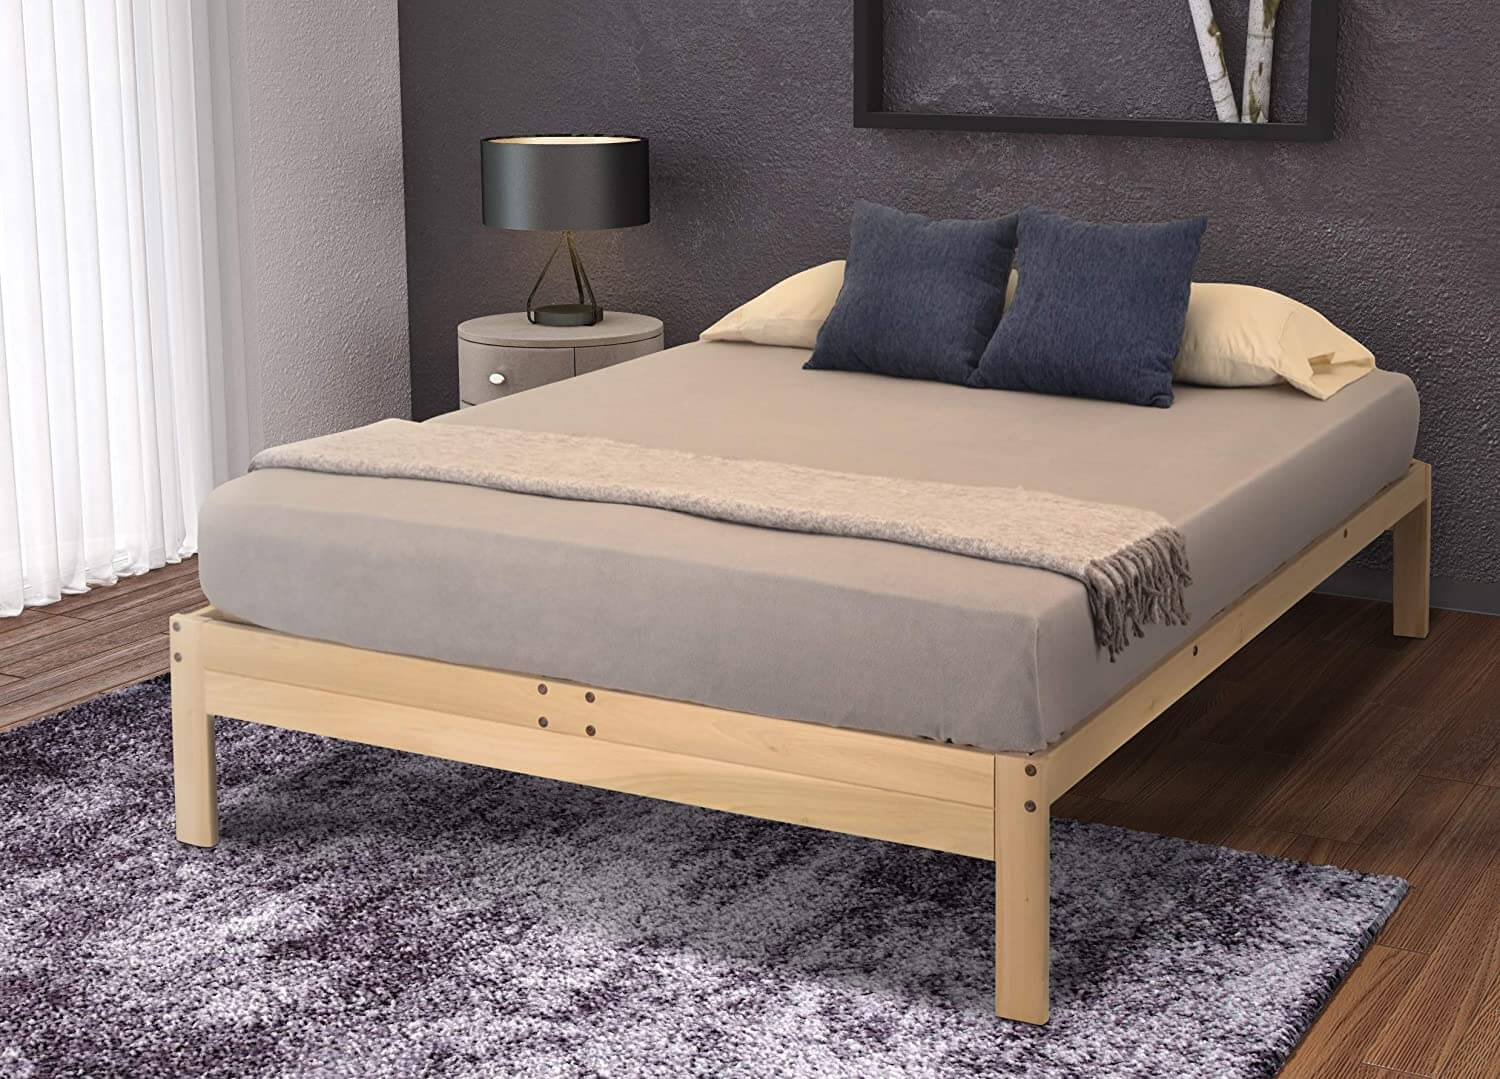 POPLAR WOOD BED FRAME DESIGN IDEAS